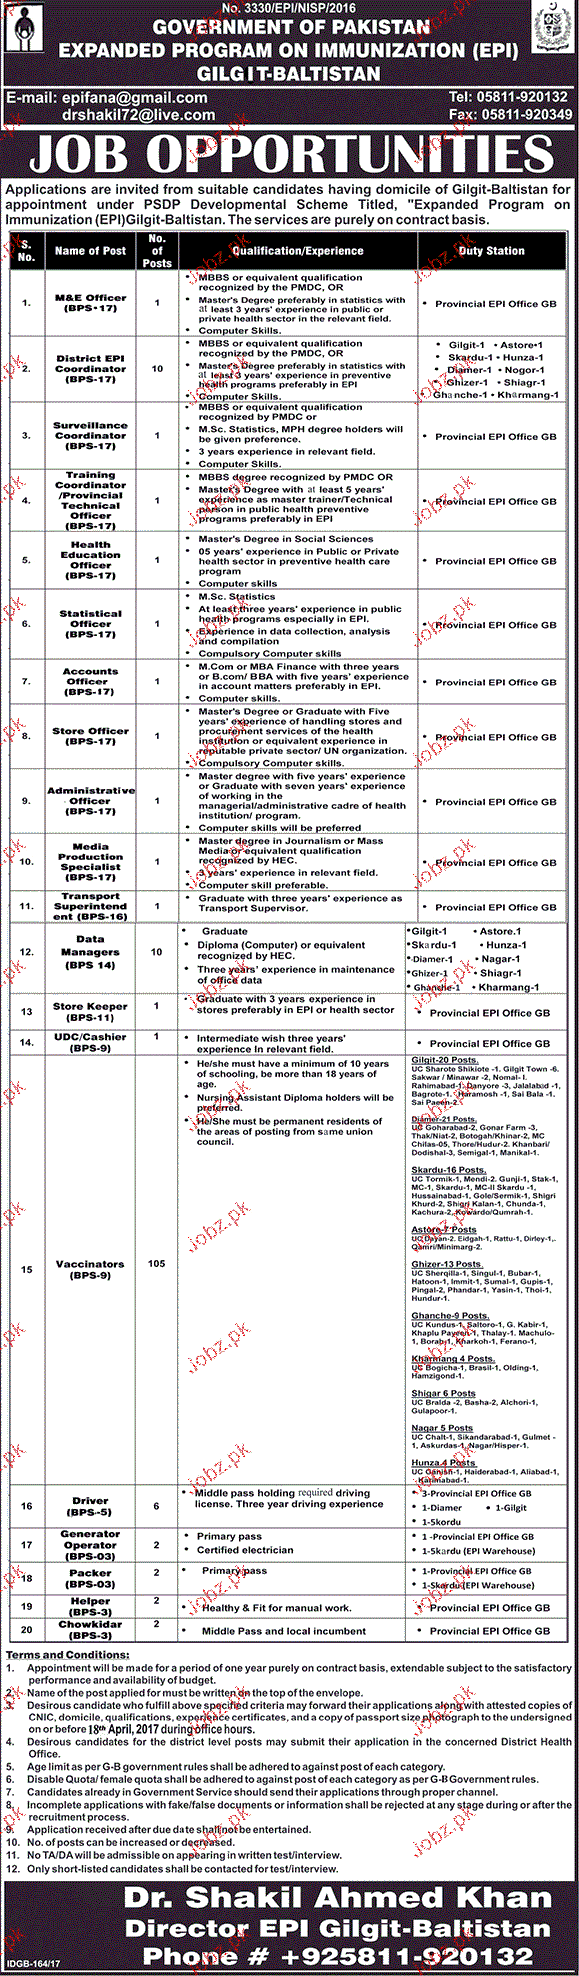 M & E Officers, District Coordinators Job Opportunity